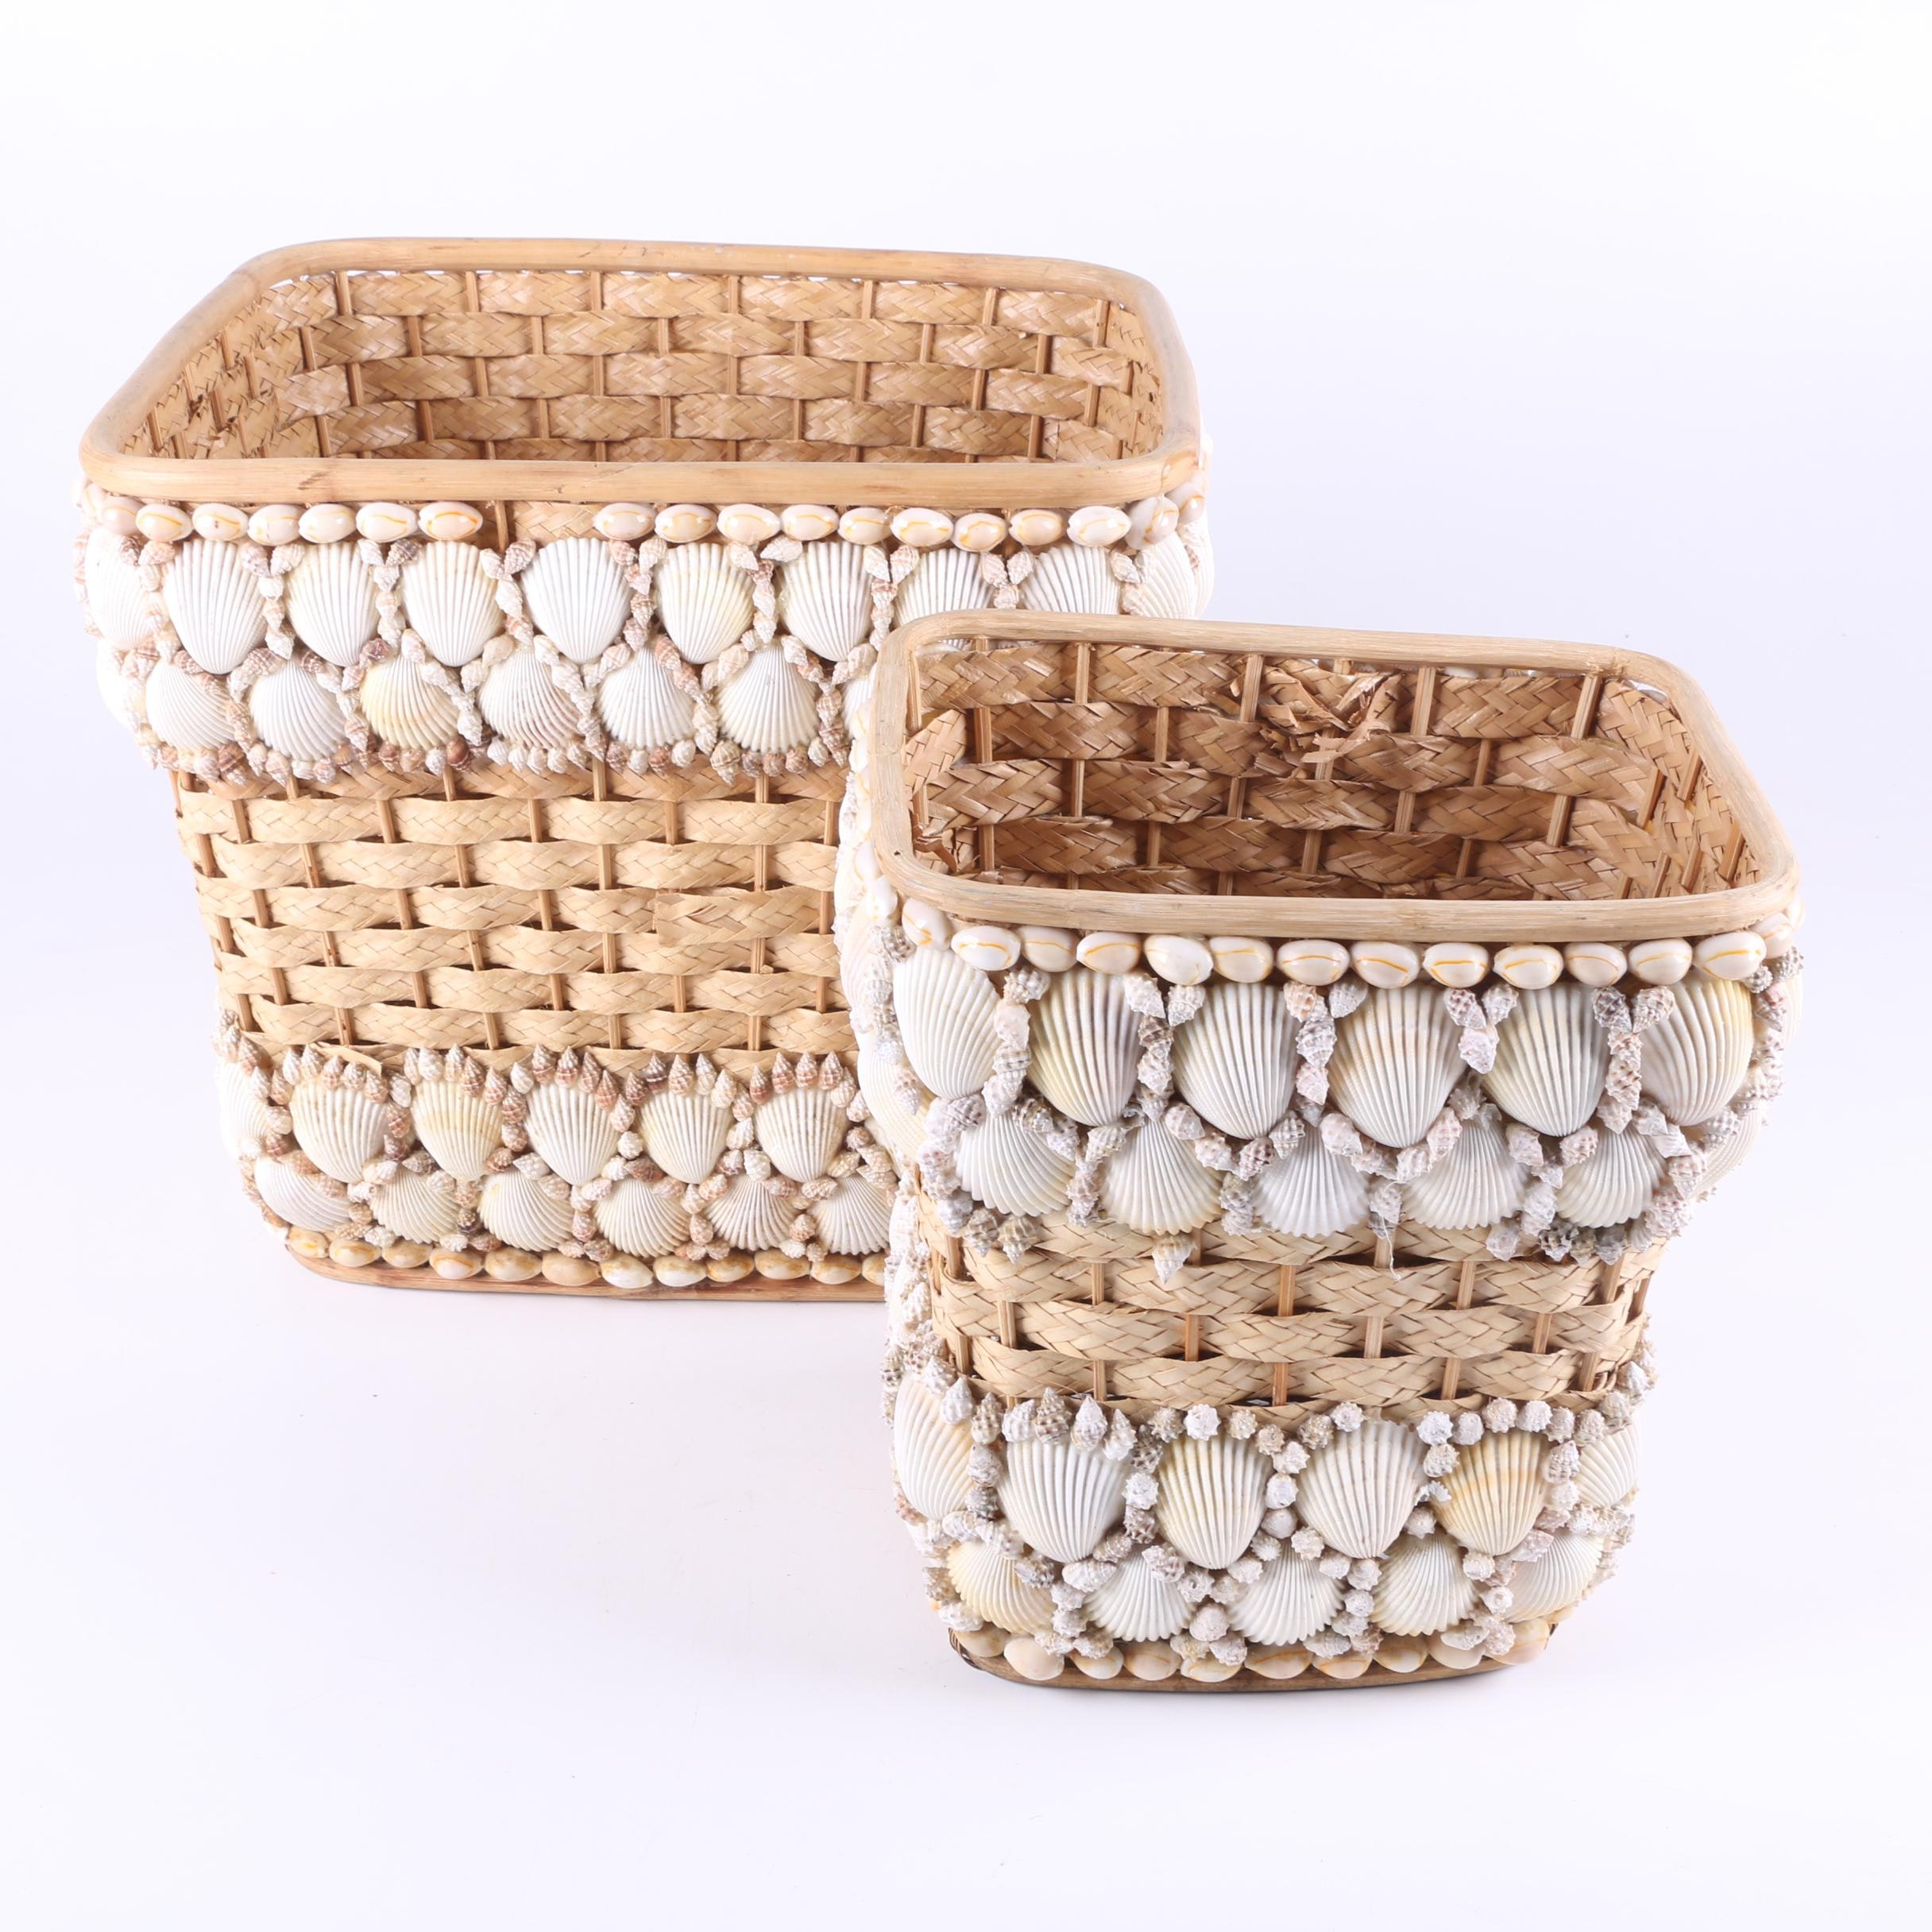 Woven Baskets with Shell Accents